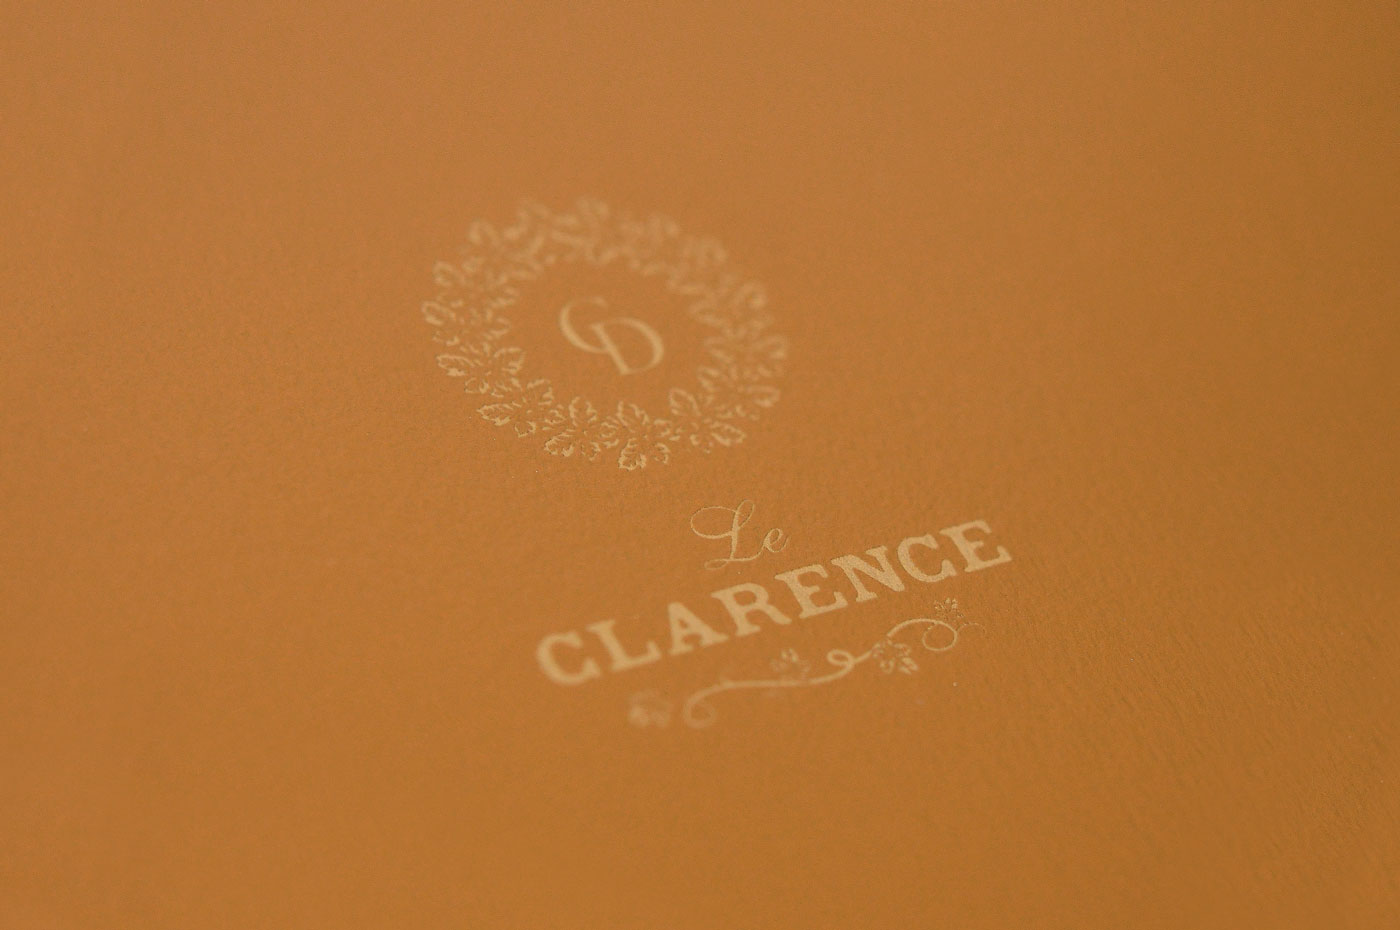 Le CLARENCE